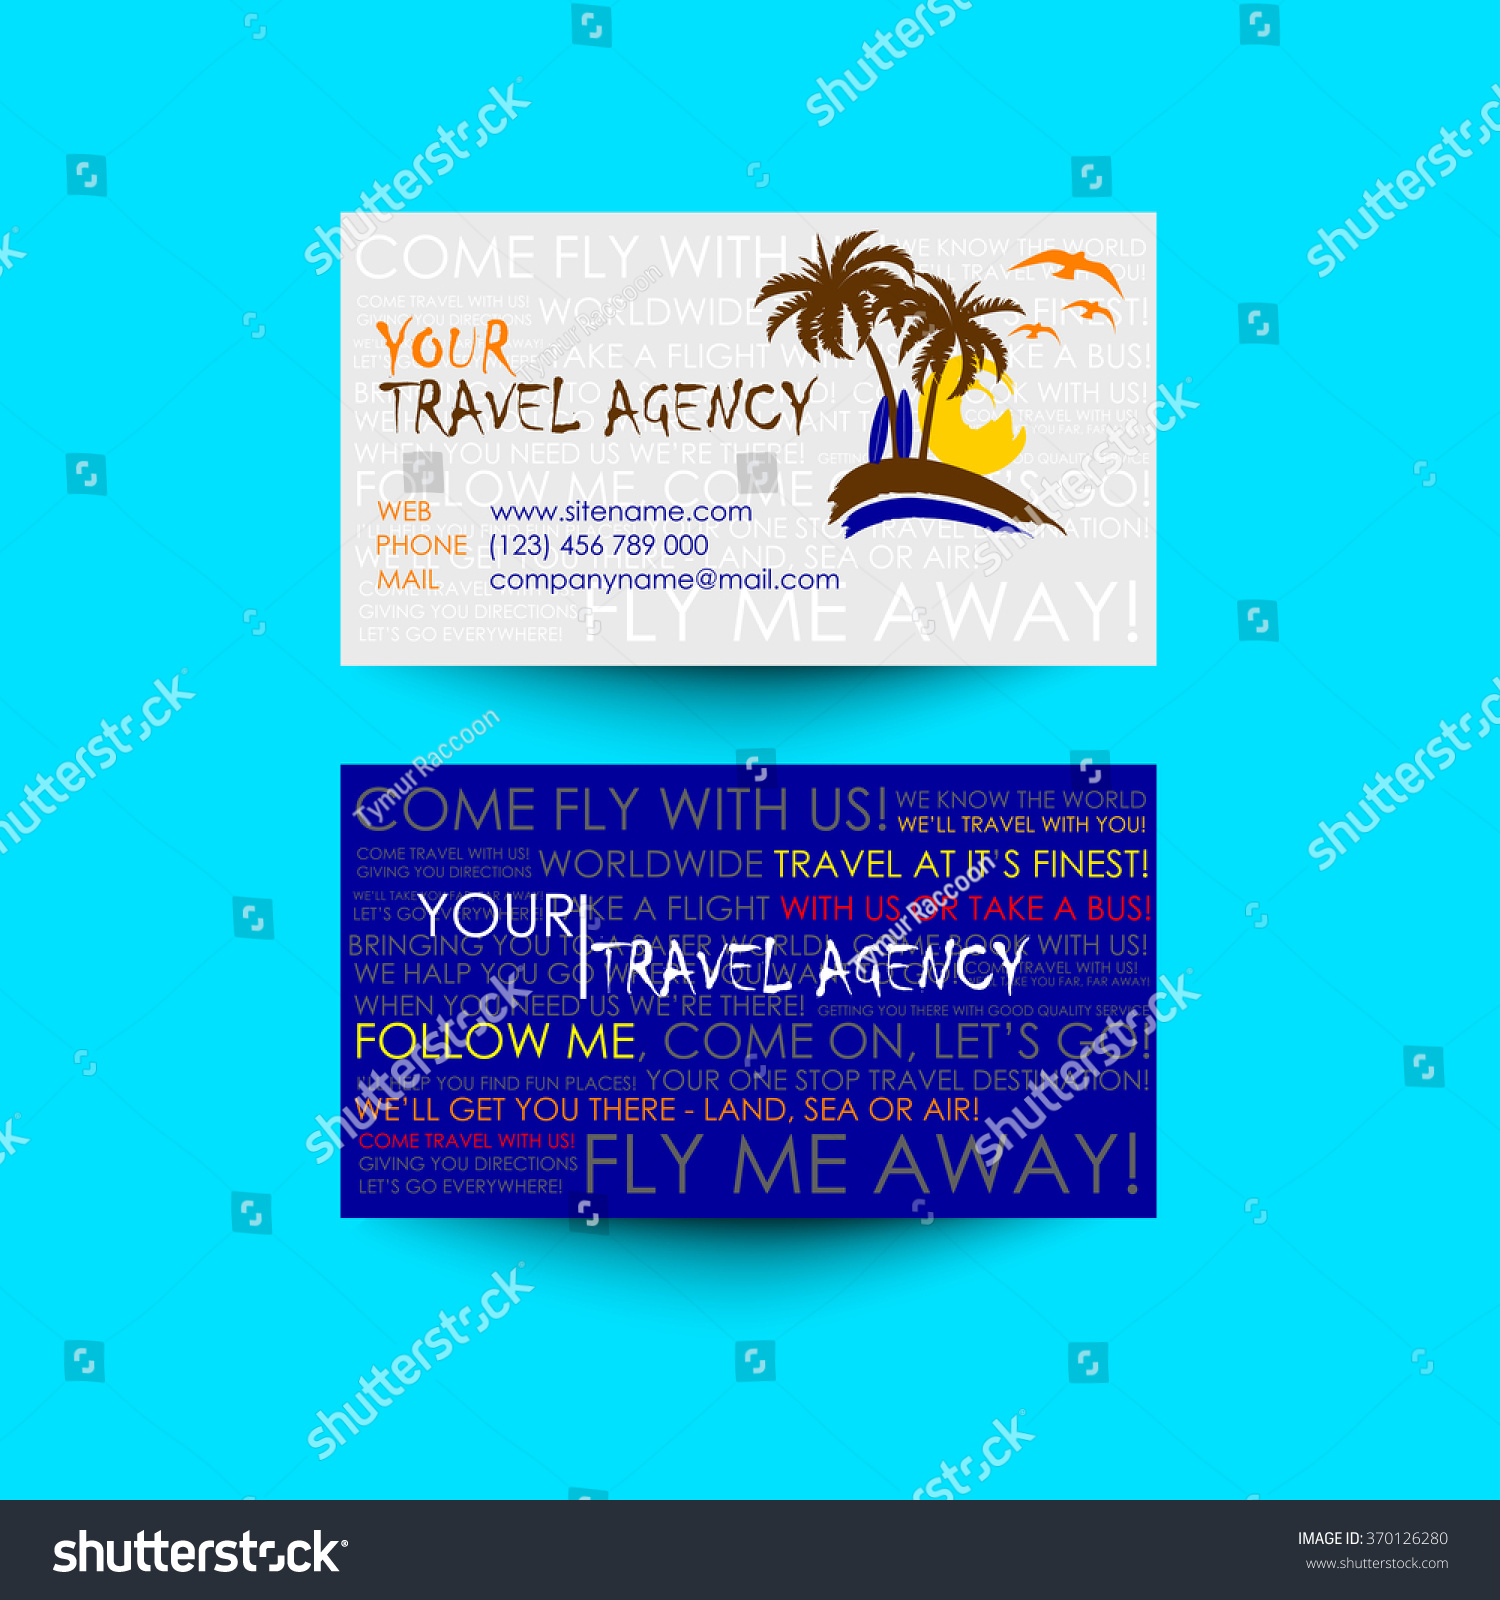 Travel agency business card template logo stock photo photo vector travel agency business card template logo design idea colourmoves